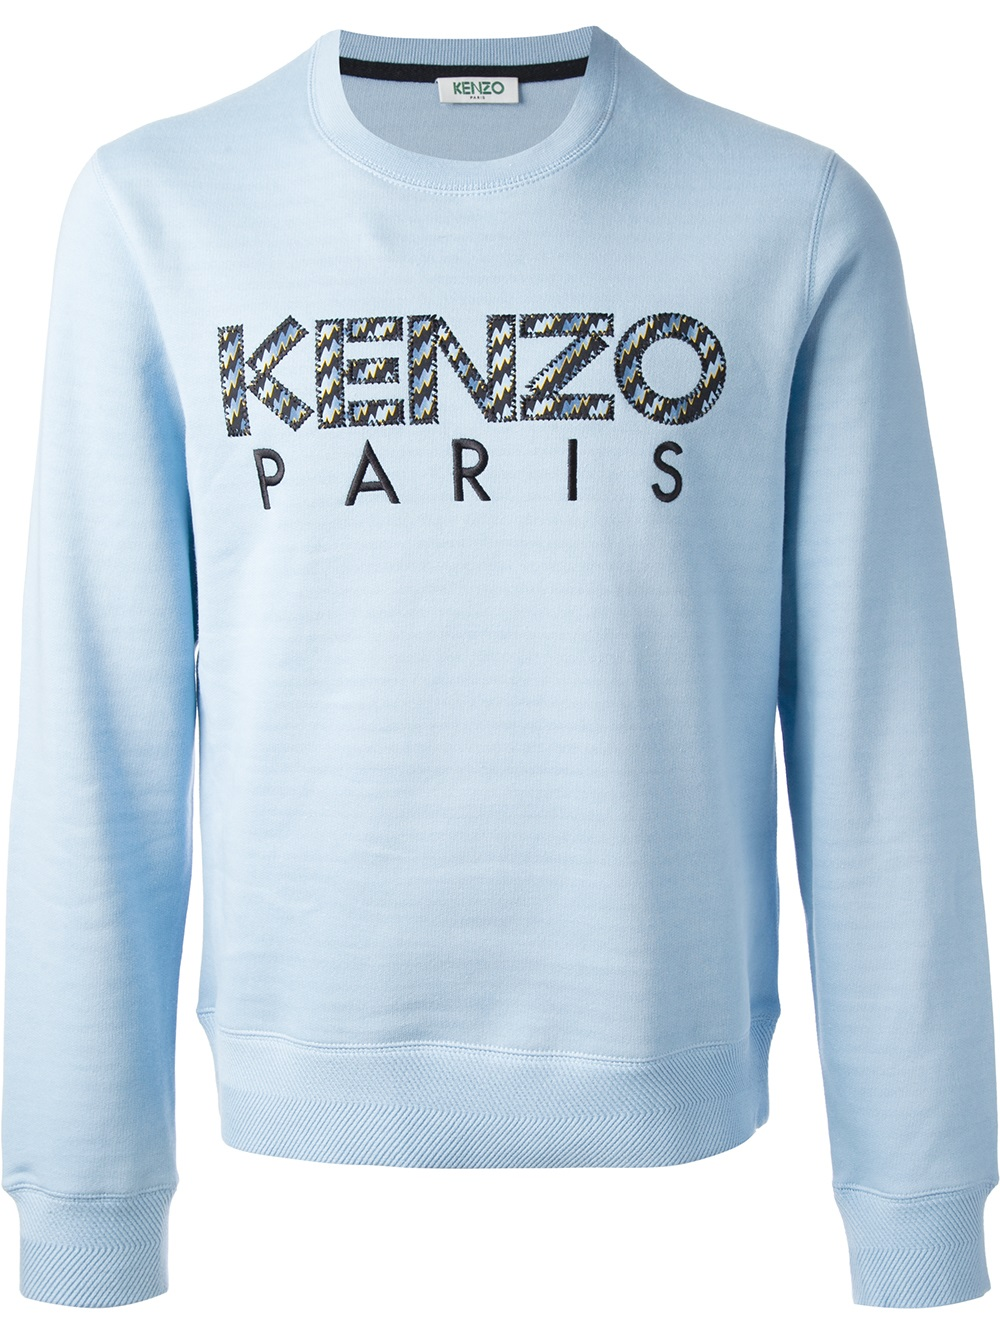 4a10a888 KENZO 'icon' Sweater in Blue for Men - Lyst